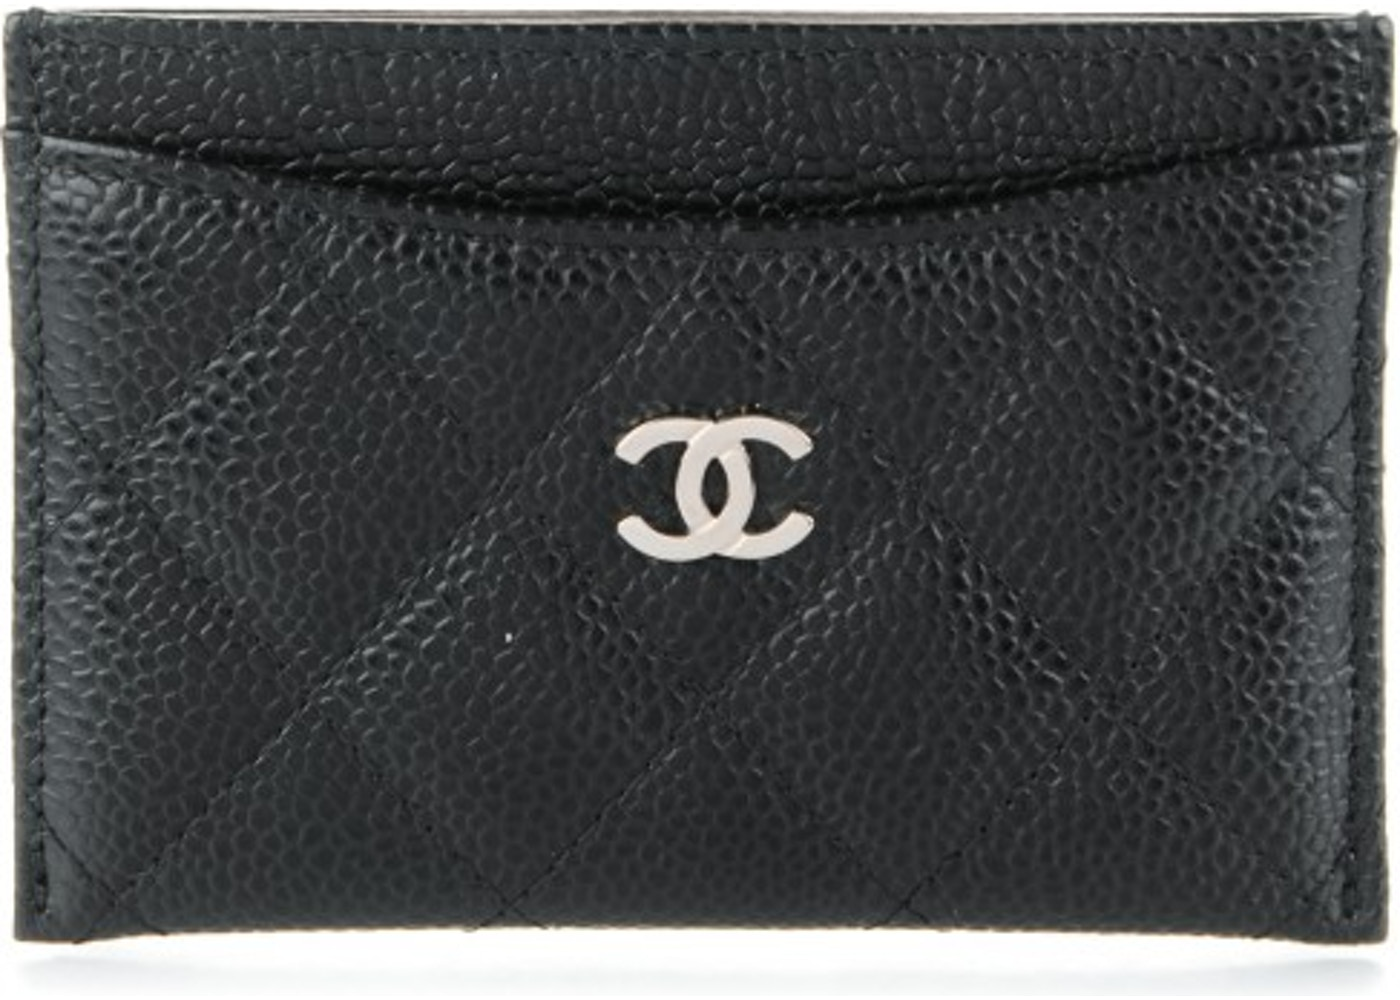 c6ade29a19ef Chanel Card Holder Diamond Quilted Black. Diamond Quilted Black